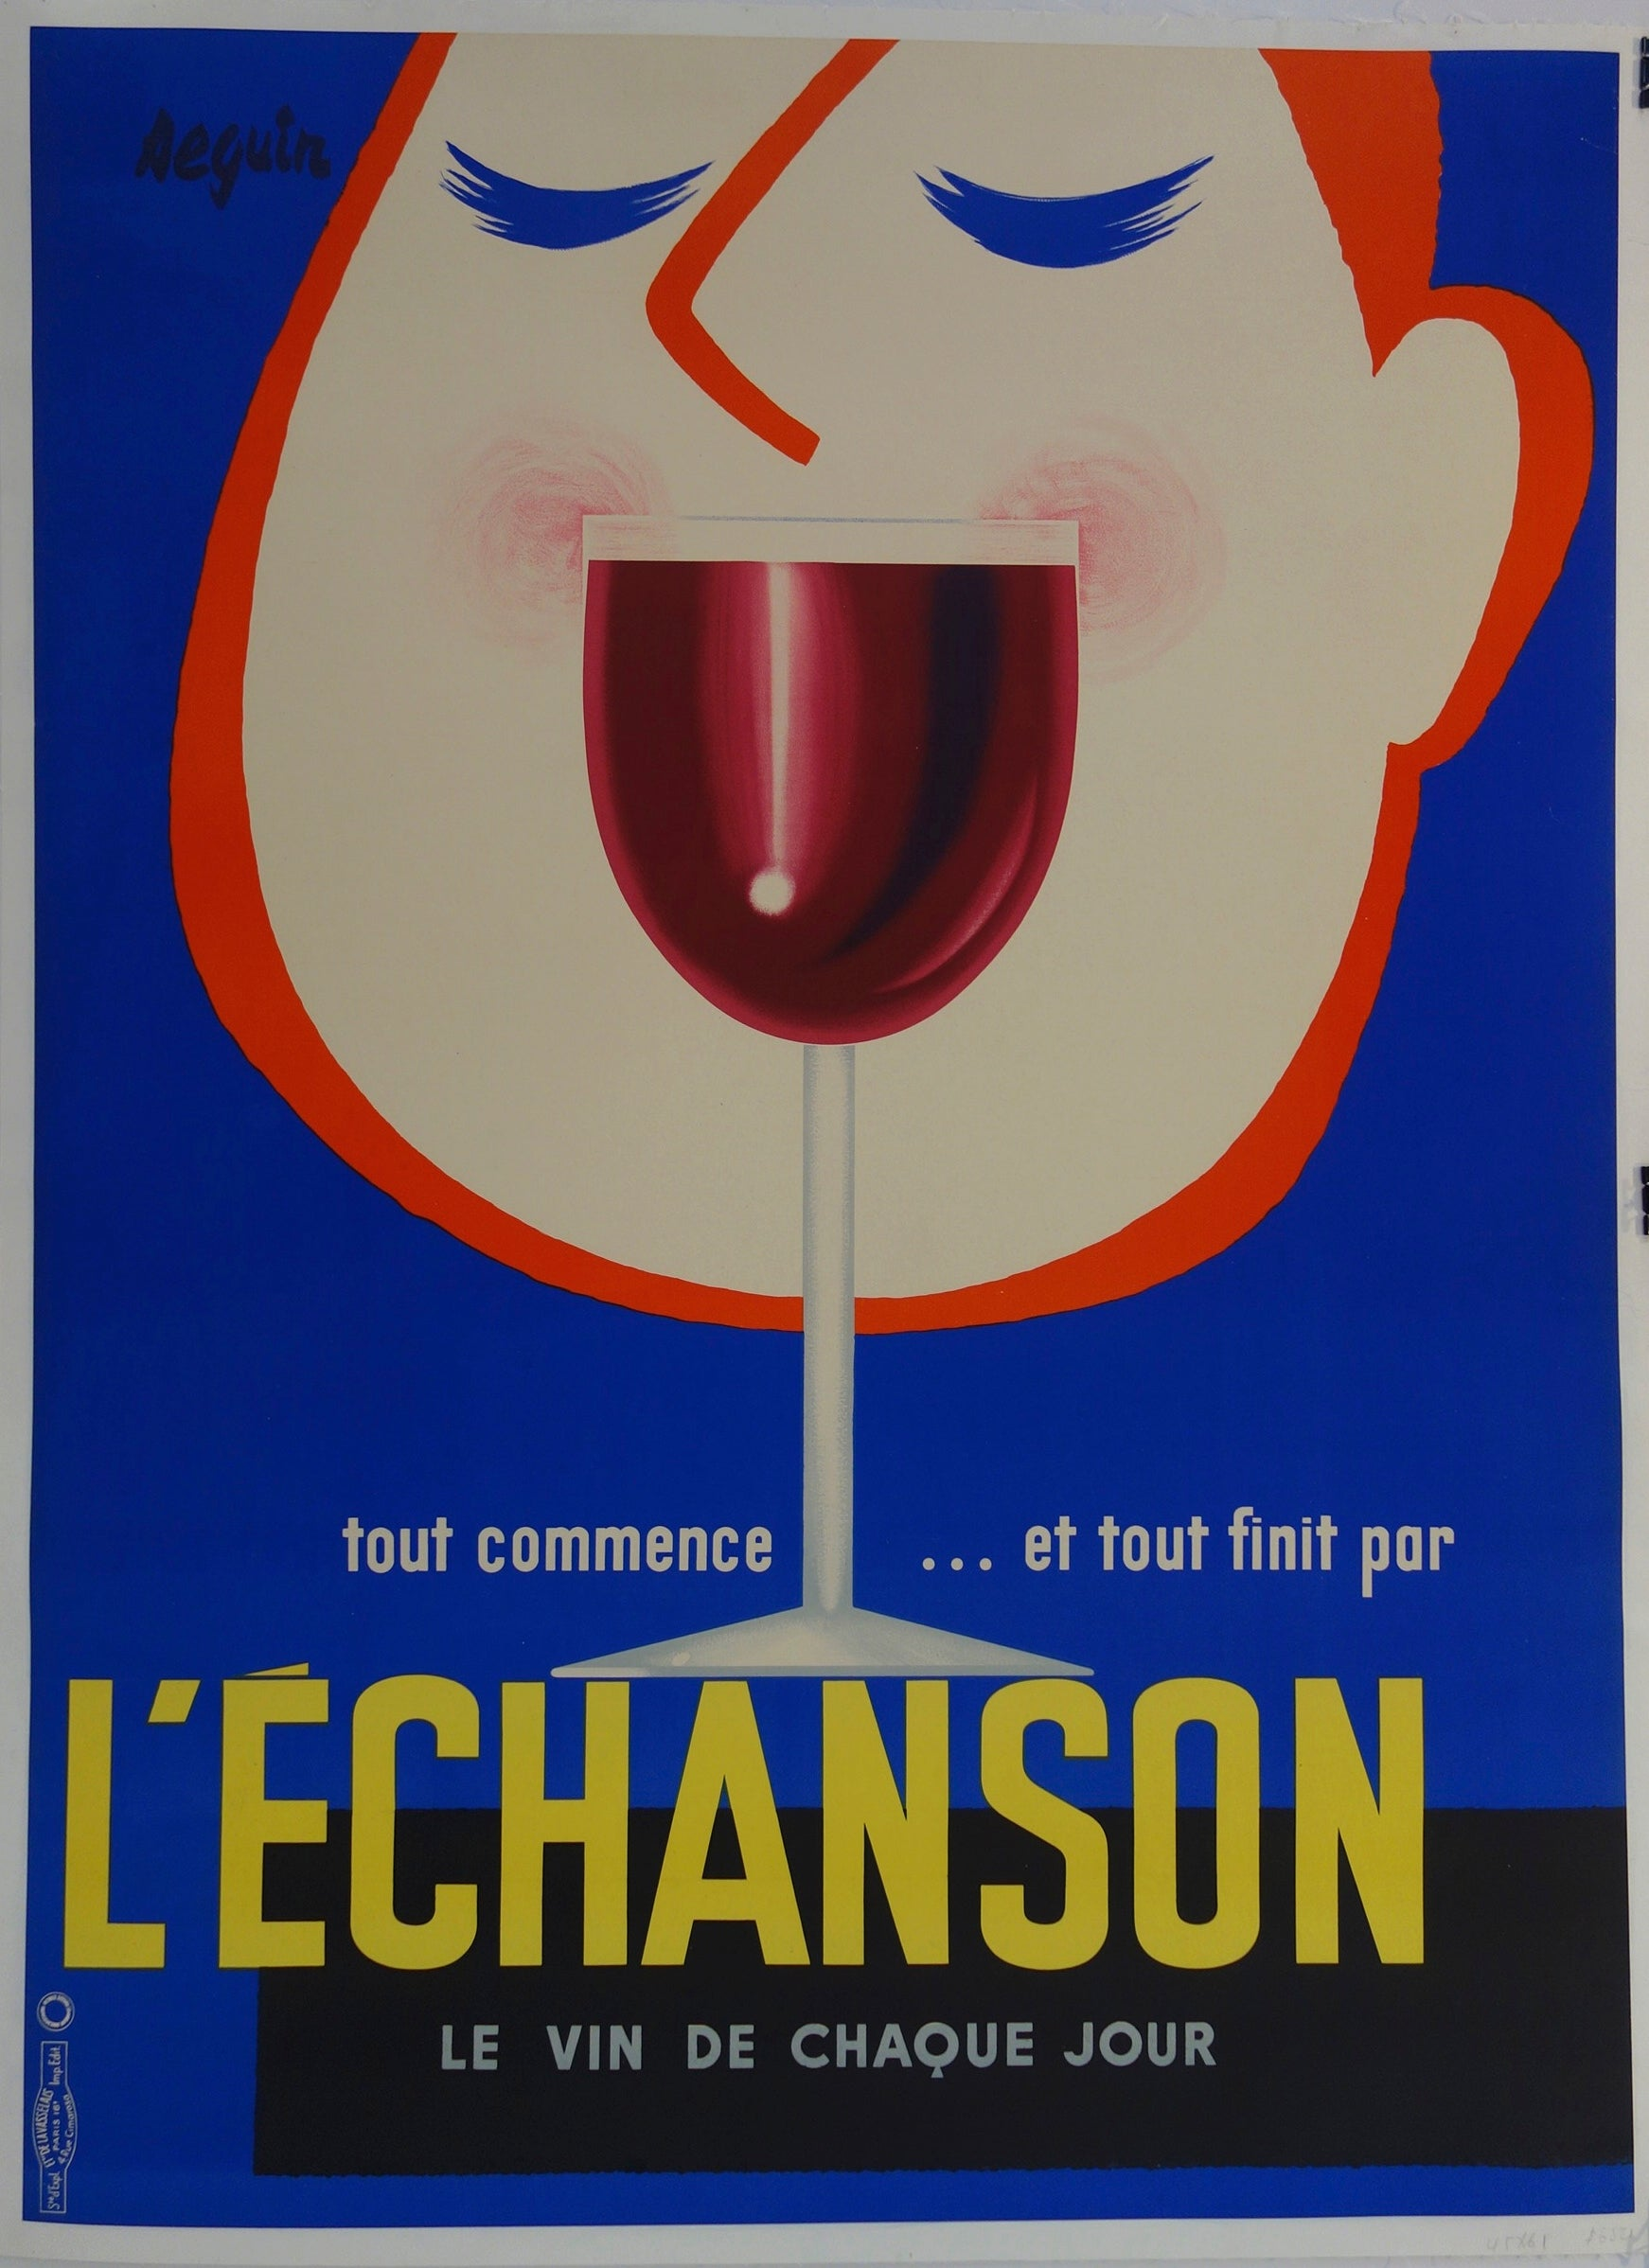 L'Echanson (The Song)